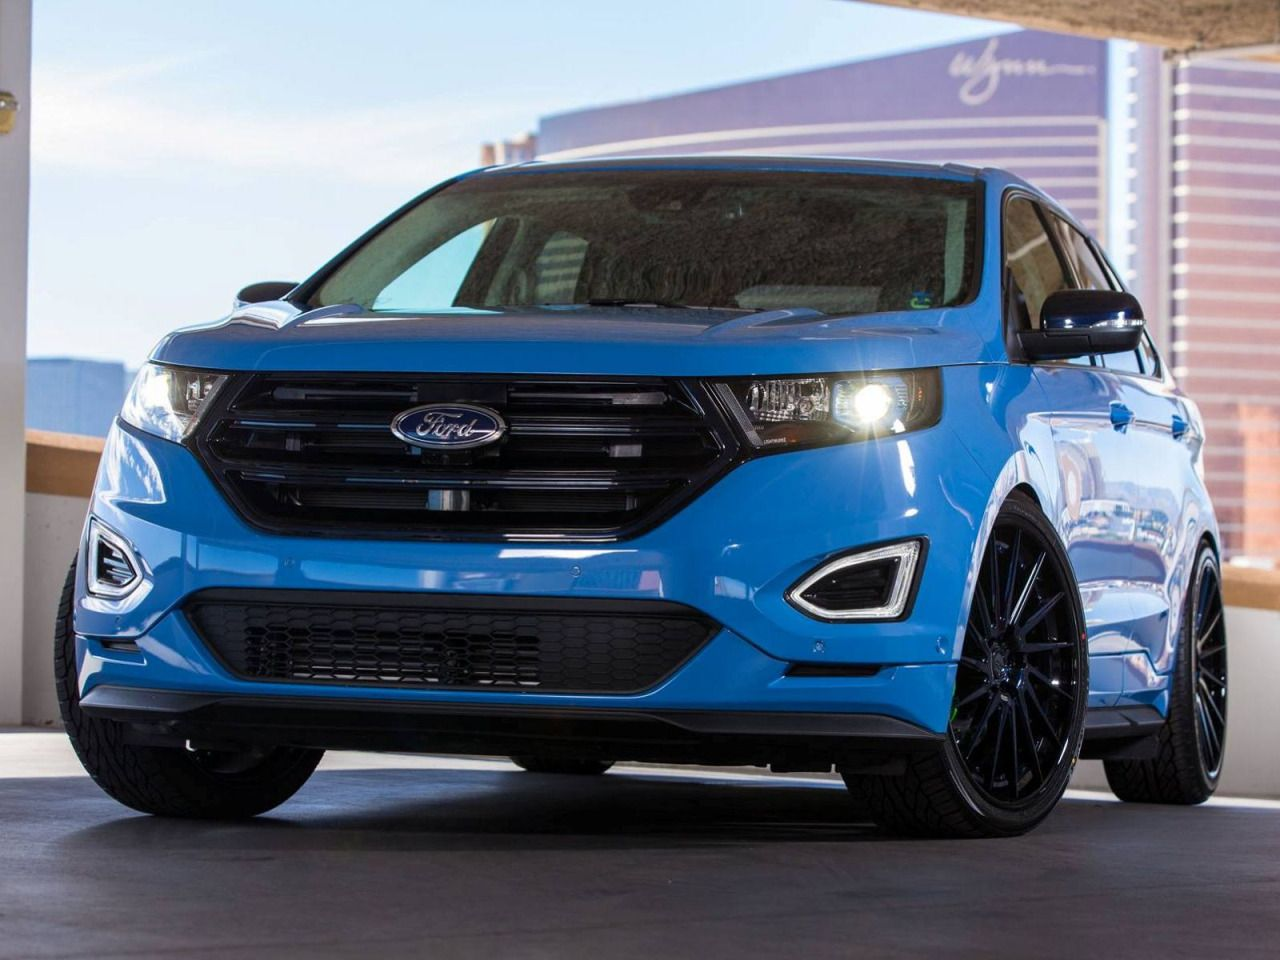 Ford Edge Sport (With images) Ford edge, Ford edge sport